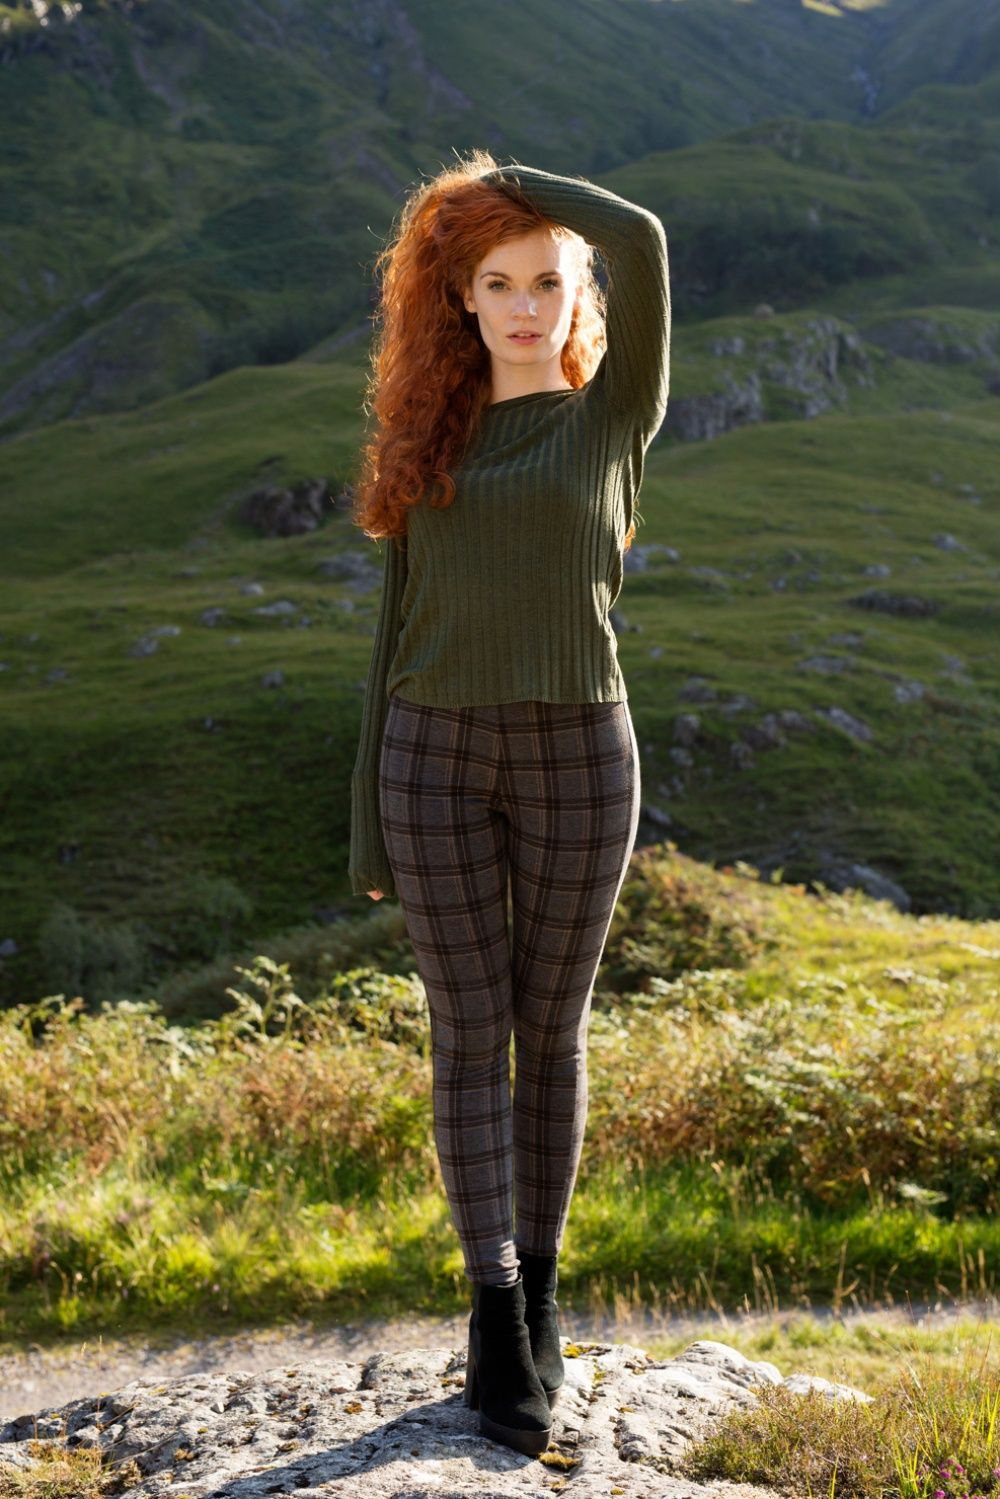 This Photographer Captured 130 Images Showing the Stunning Beauty ofRedheads pictures